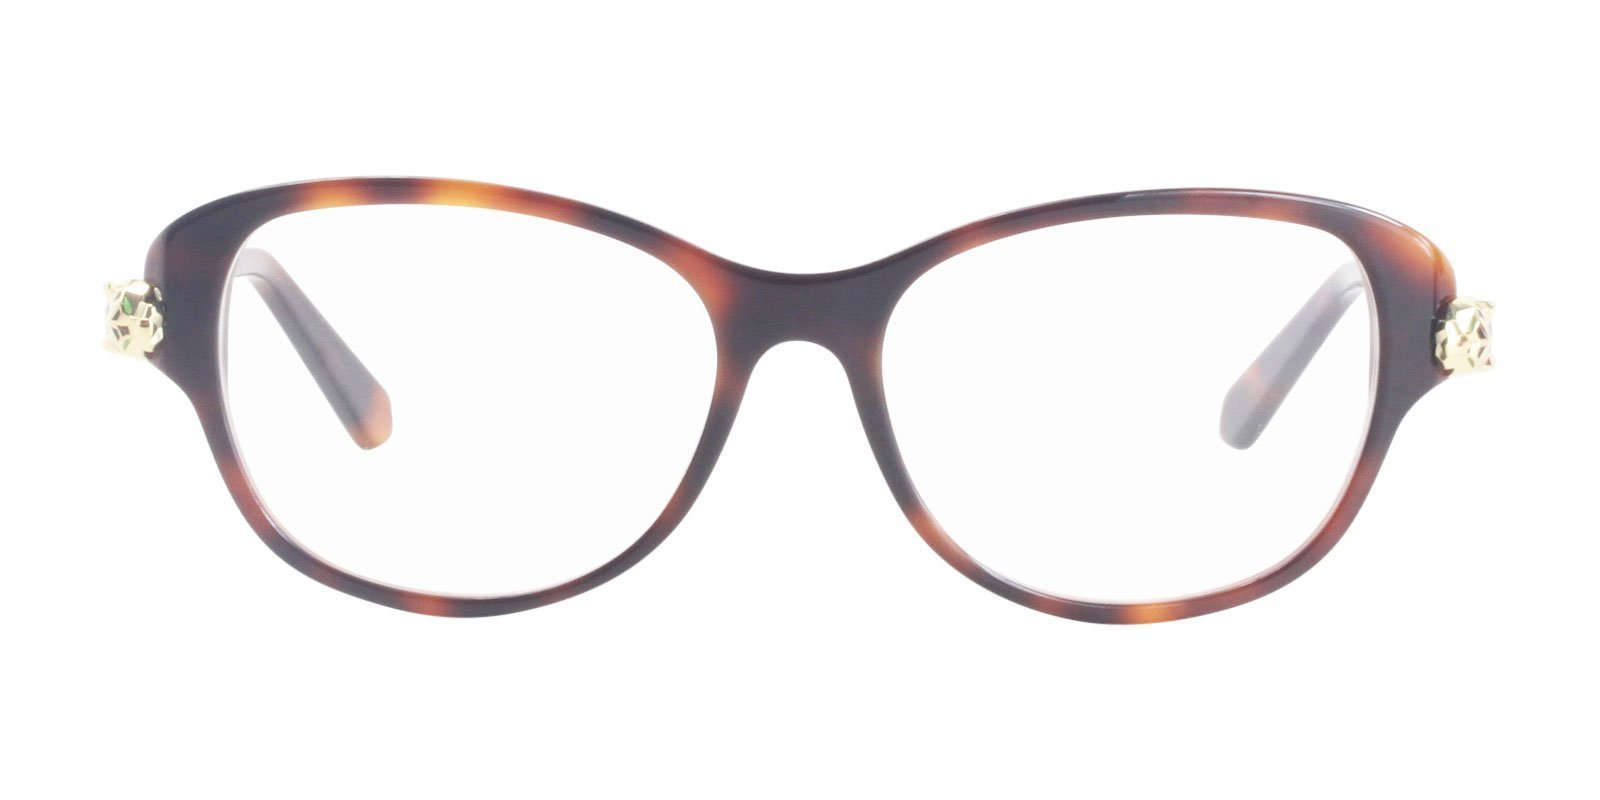 88c843e6602 Cartier Panthere Glasses   Our 2018 Favorite Styles